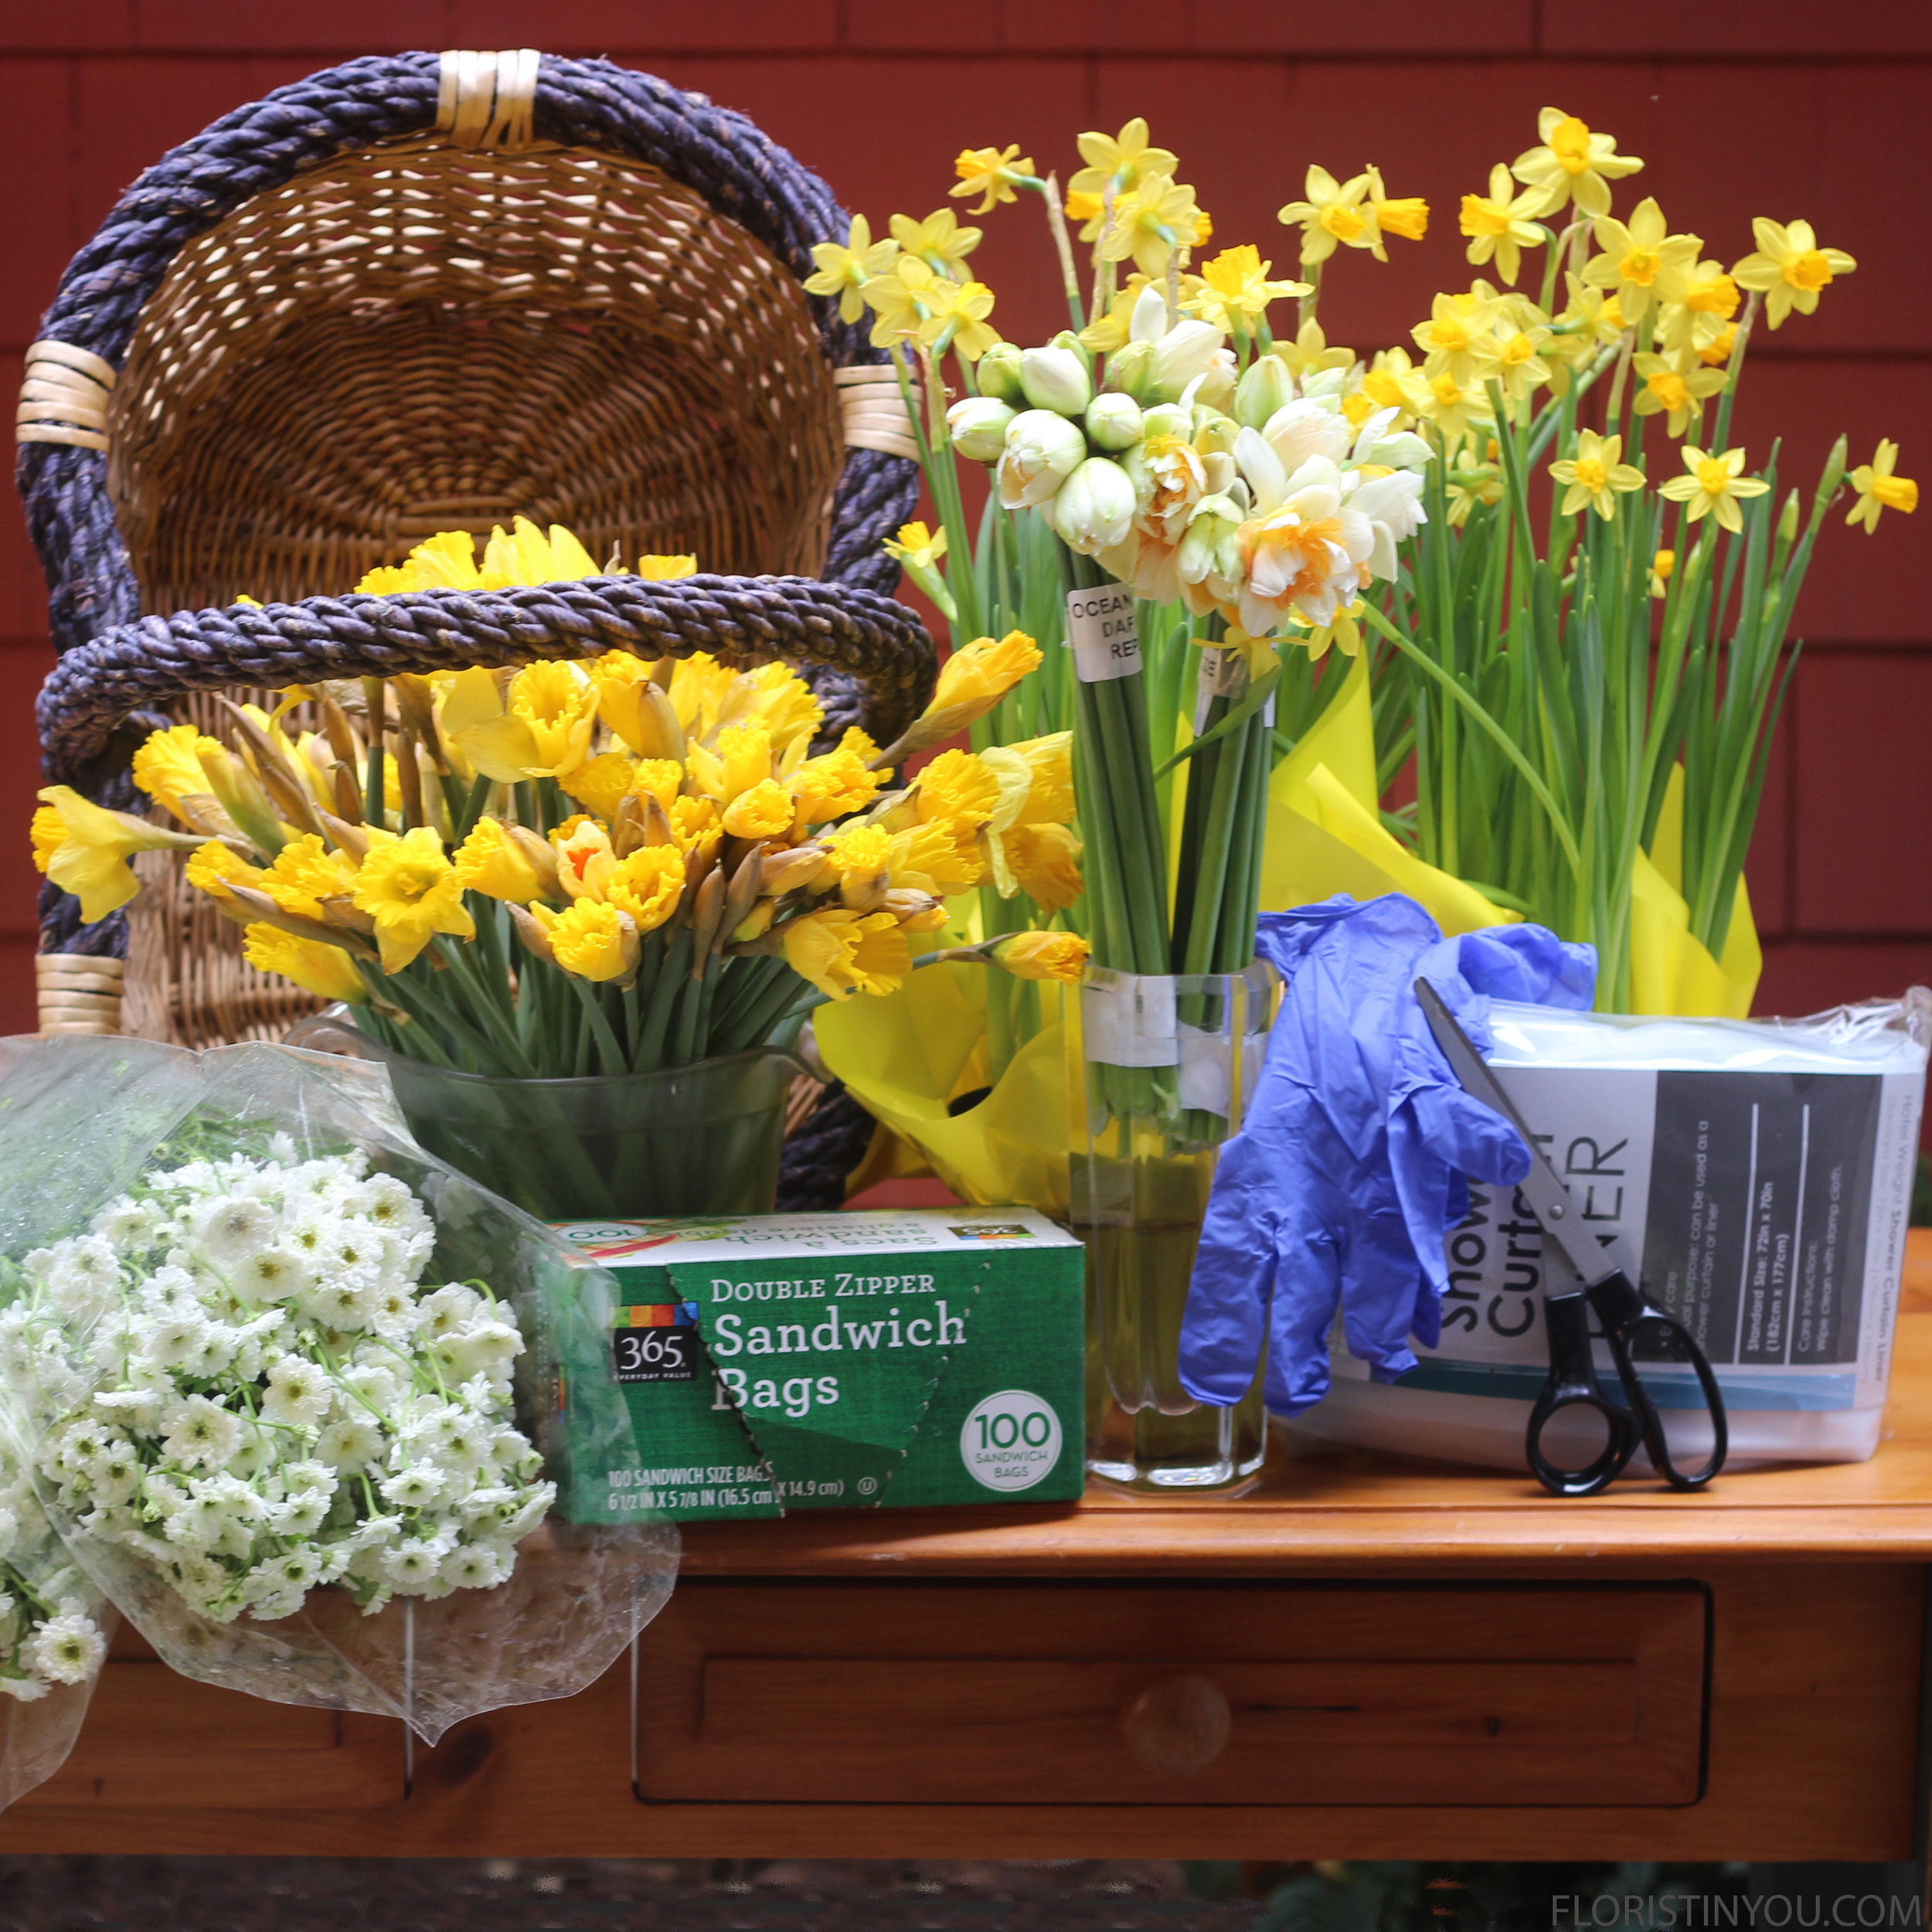 Here is the basket, potted Mini Daffodils and shower curtain that you will use..